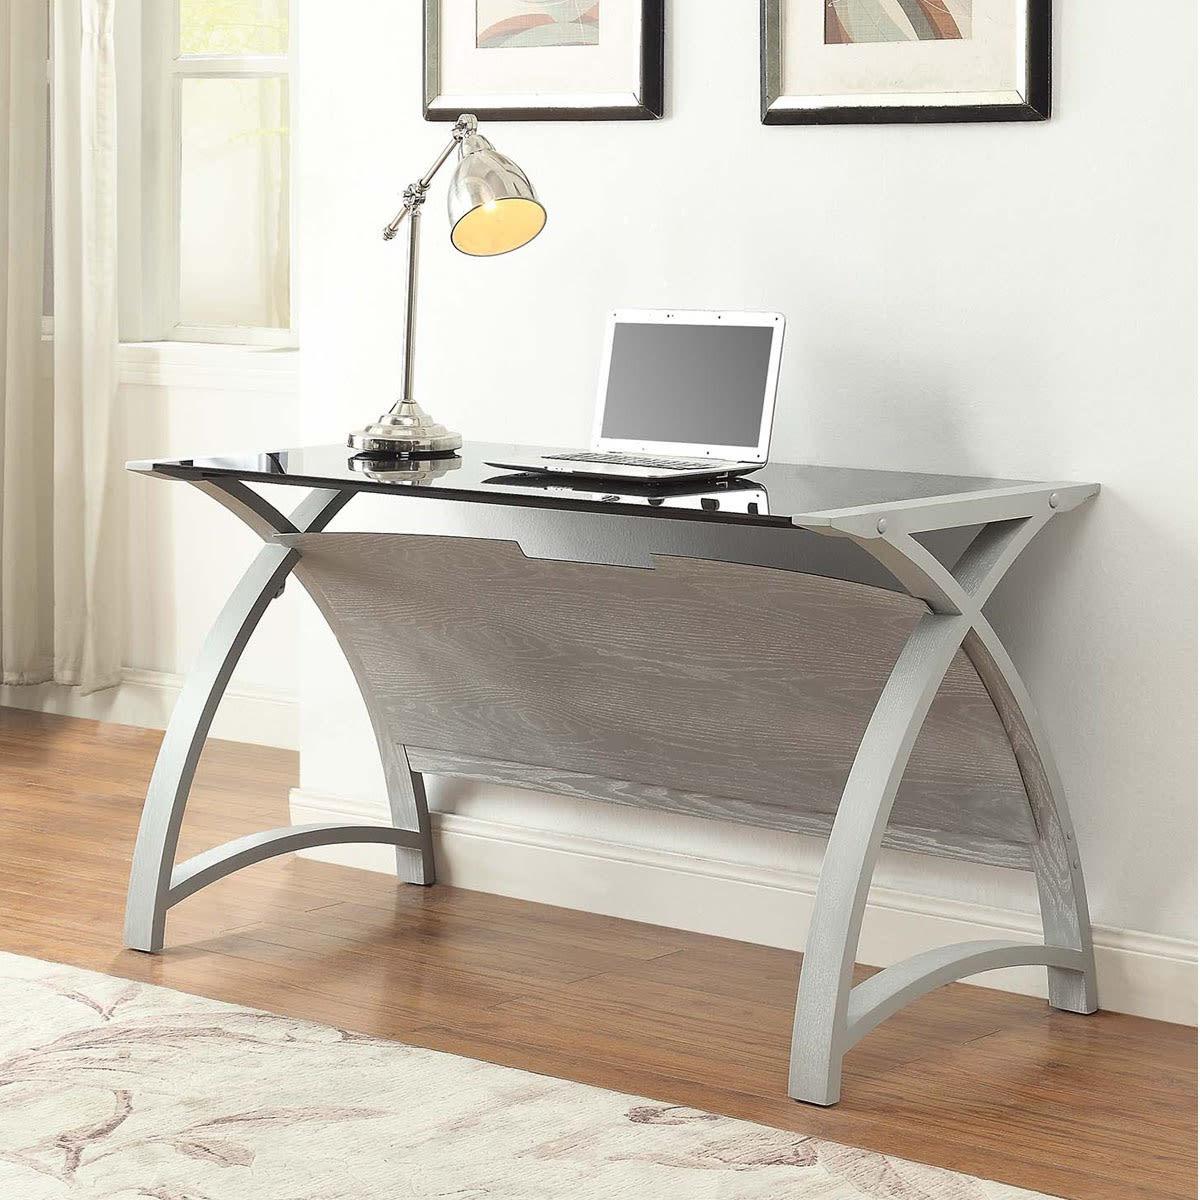 Curve Home Office Grey Ash Table (130cm) Was £374.00 Now £